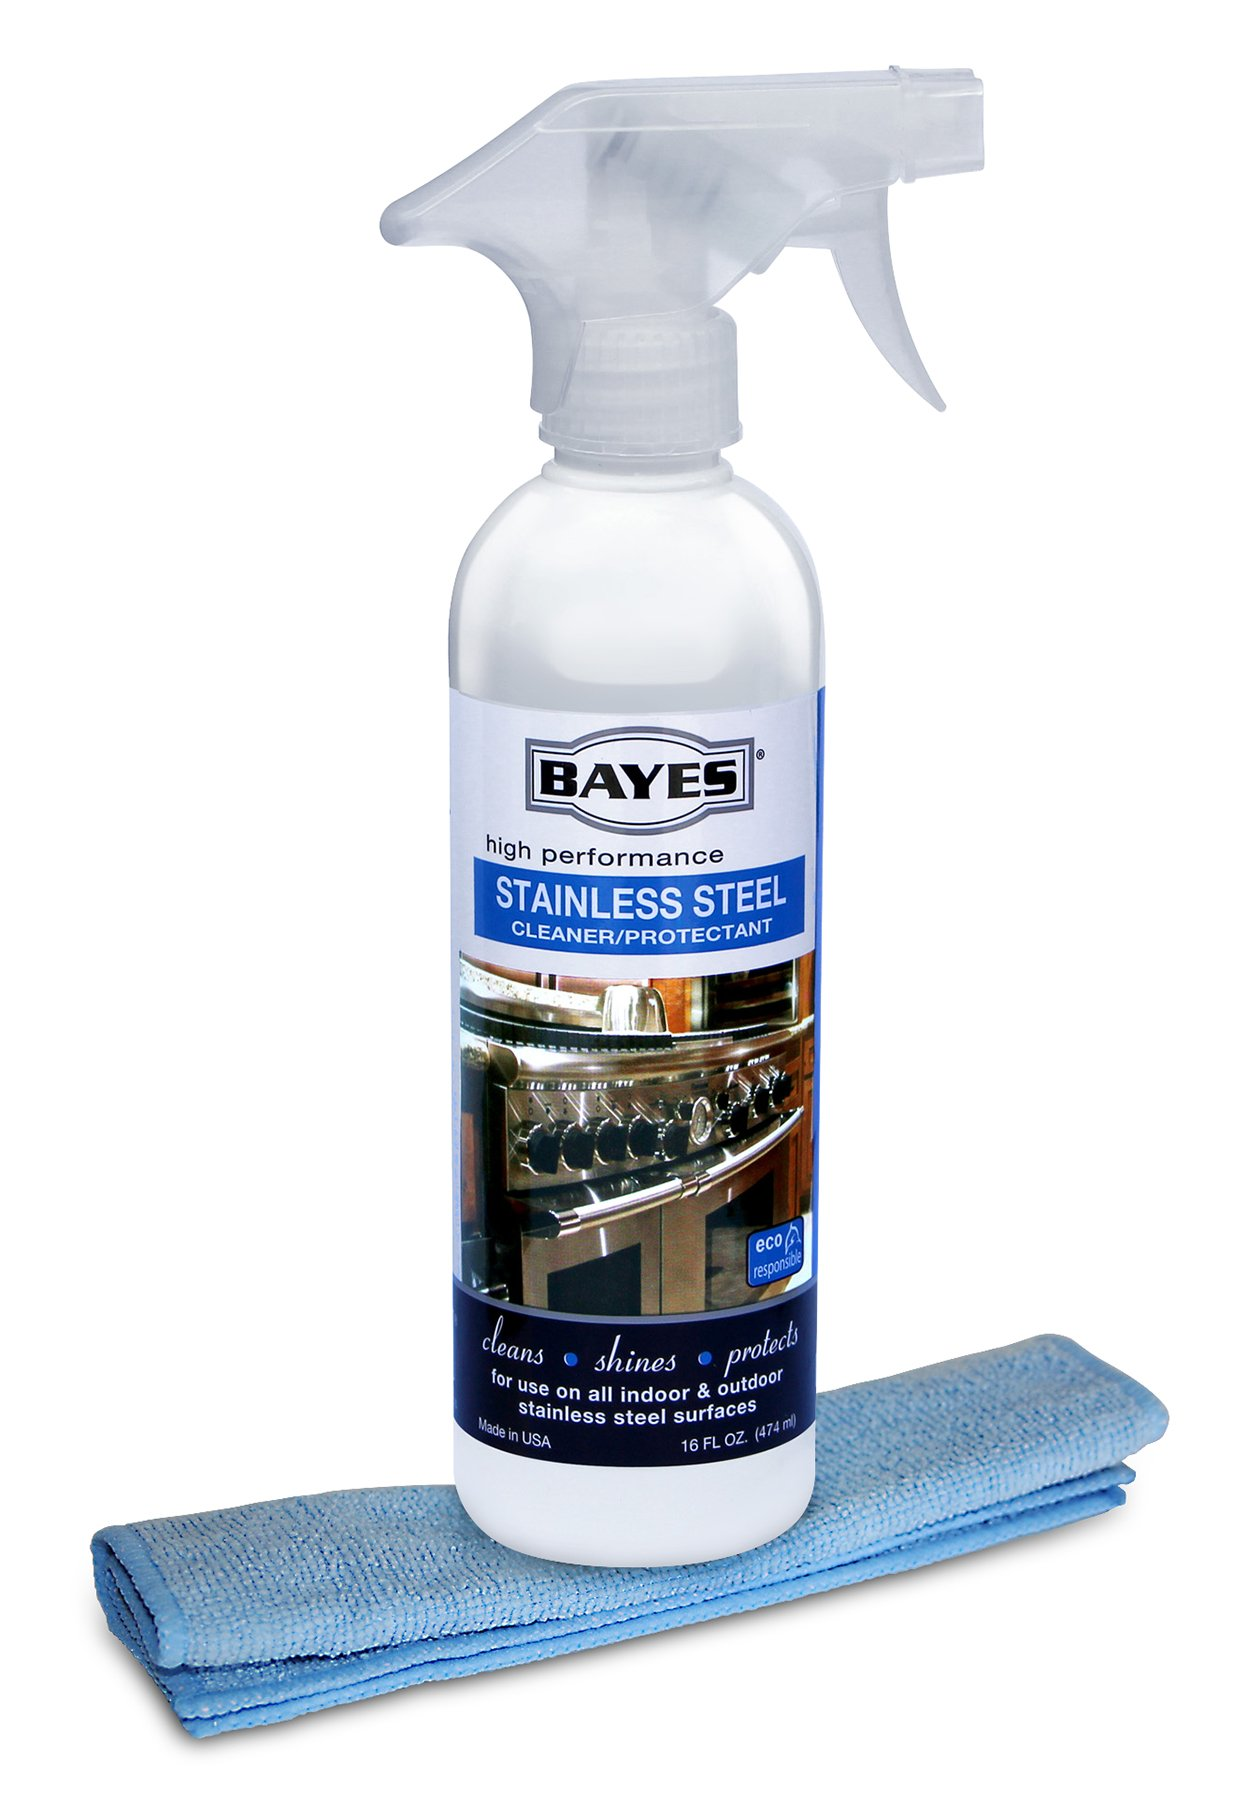 Bayes High-Performance Stainless Steel Cleaner, Polish, and Protectant - Includes Microfiber Cloth - Cleans, Shines and Protects Indoor and Outdoor Stainless Steel Surfaces - 16 oz by Bayes